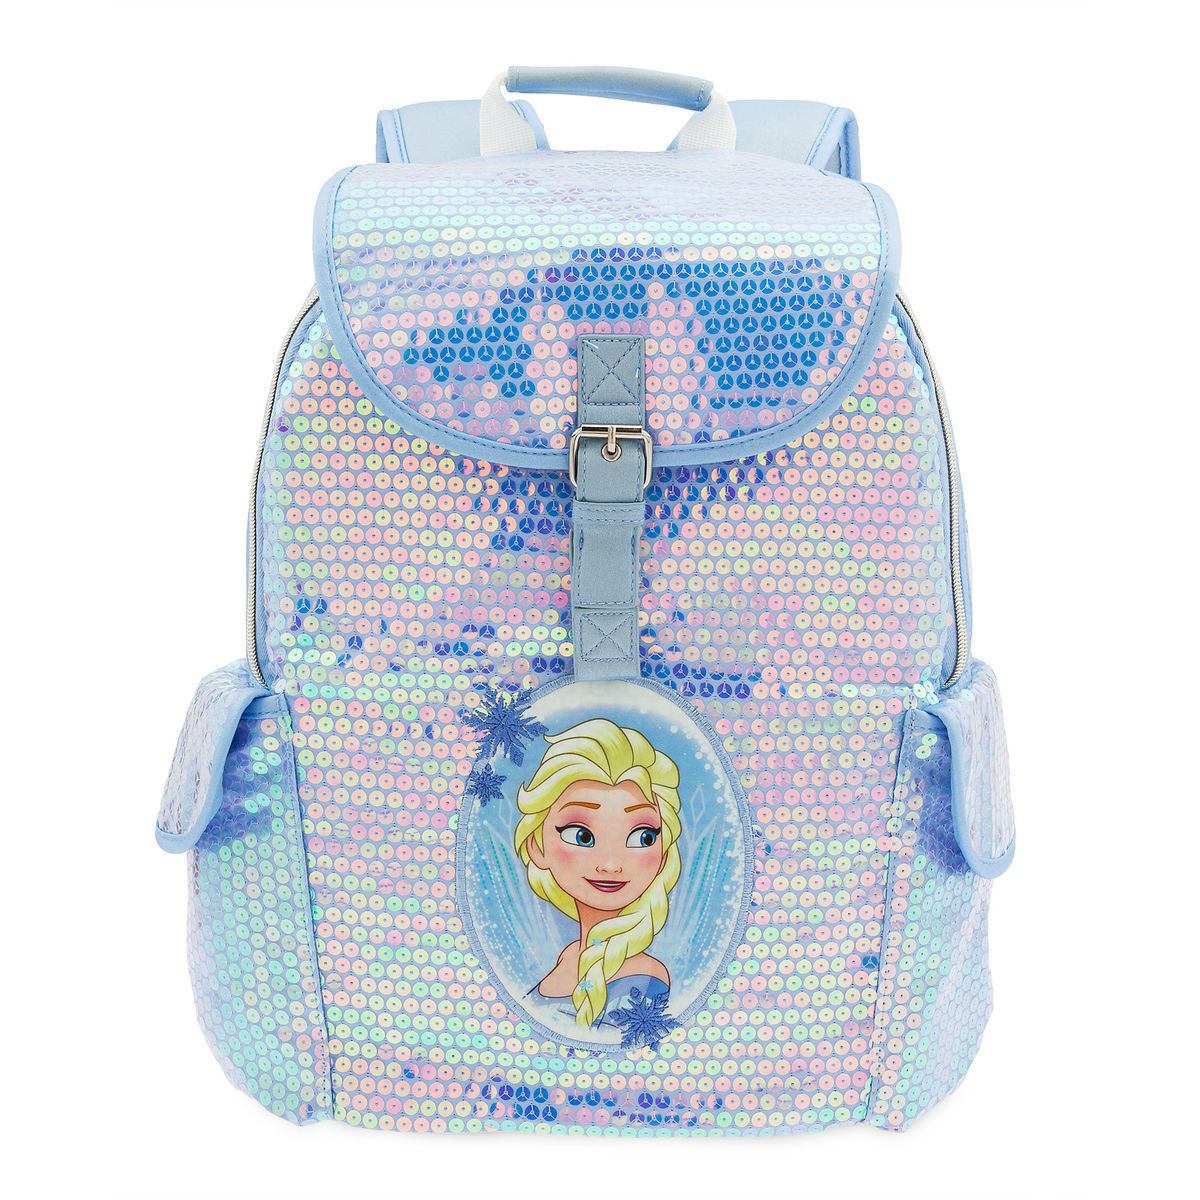 Product Image of Elsa Backpack for Kids - Frozen - Personalized   1 abcc586fa55e4